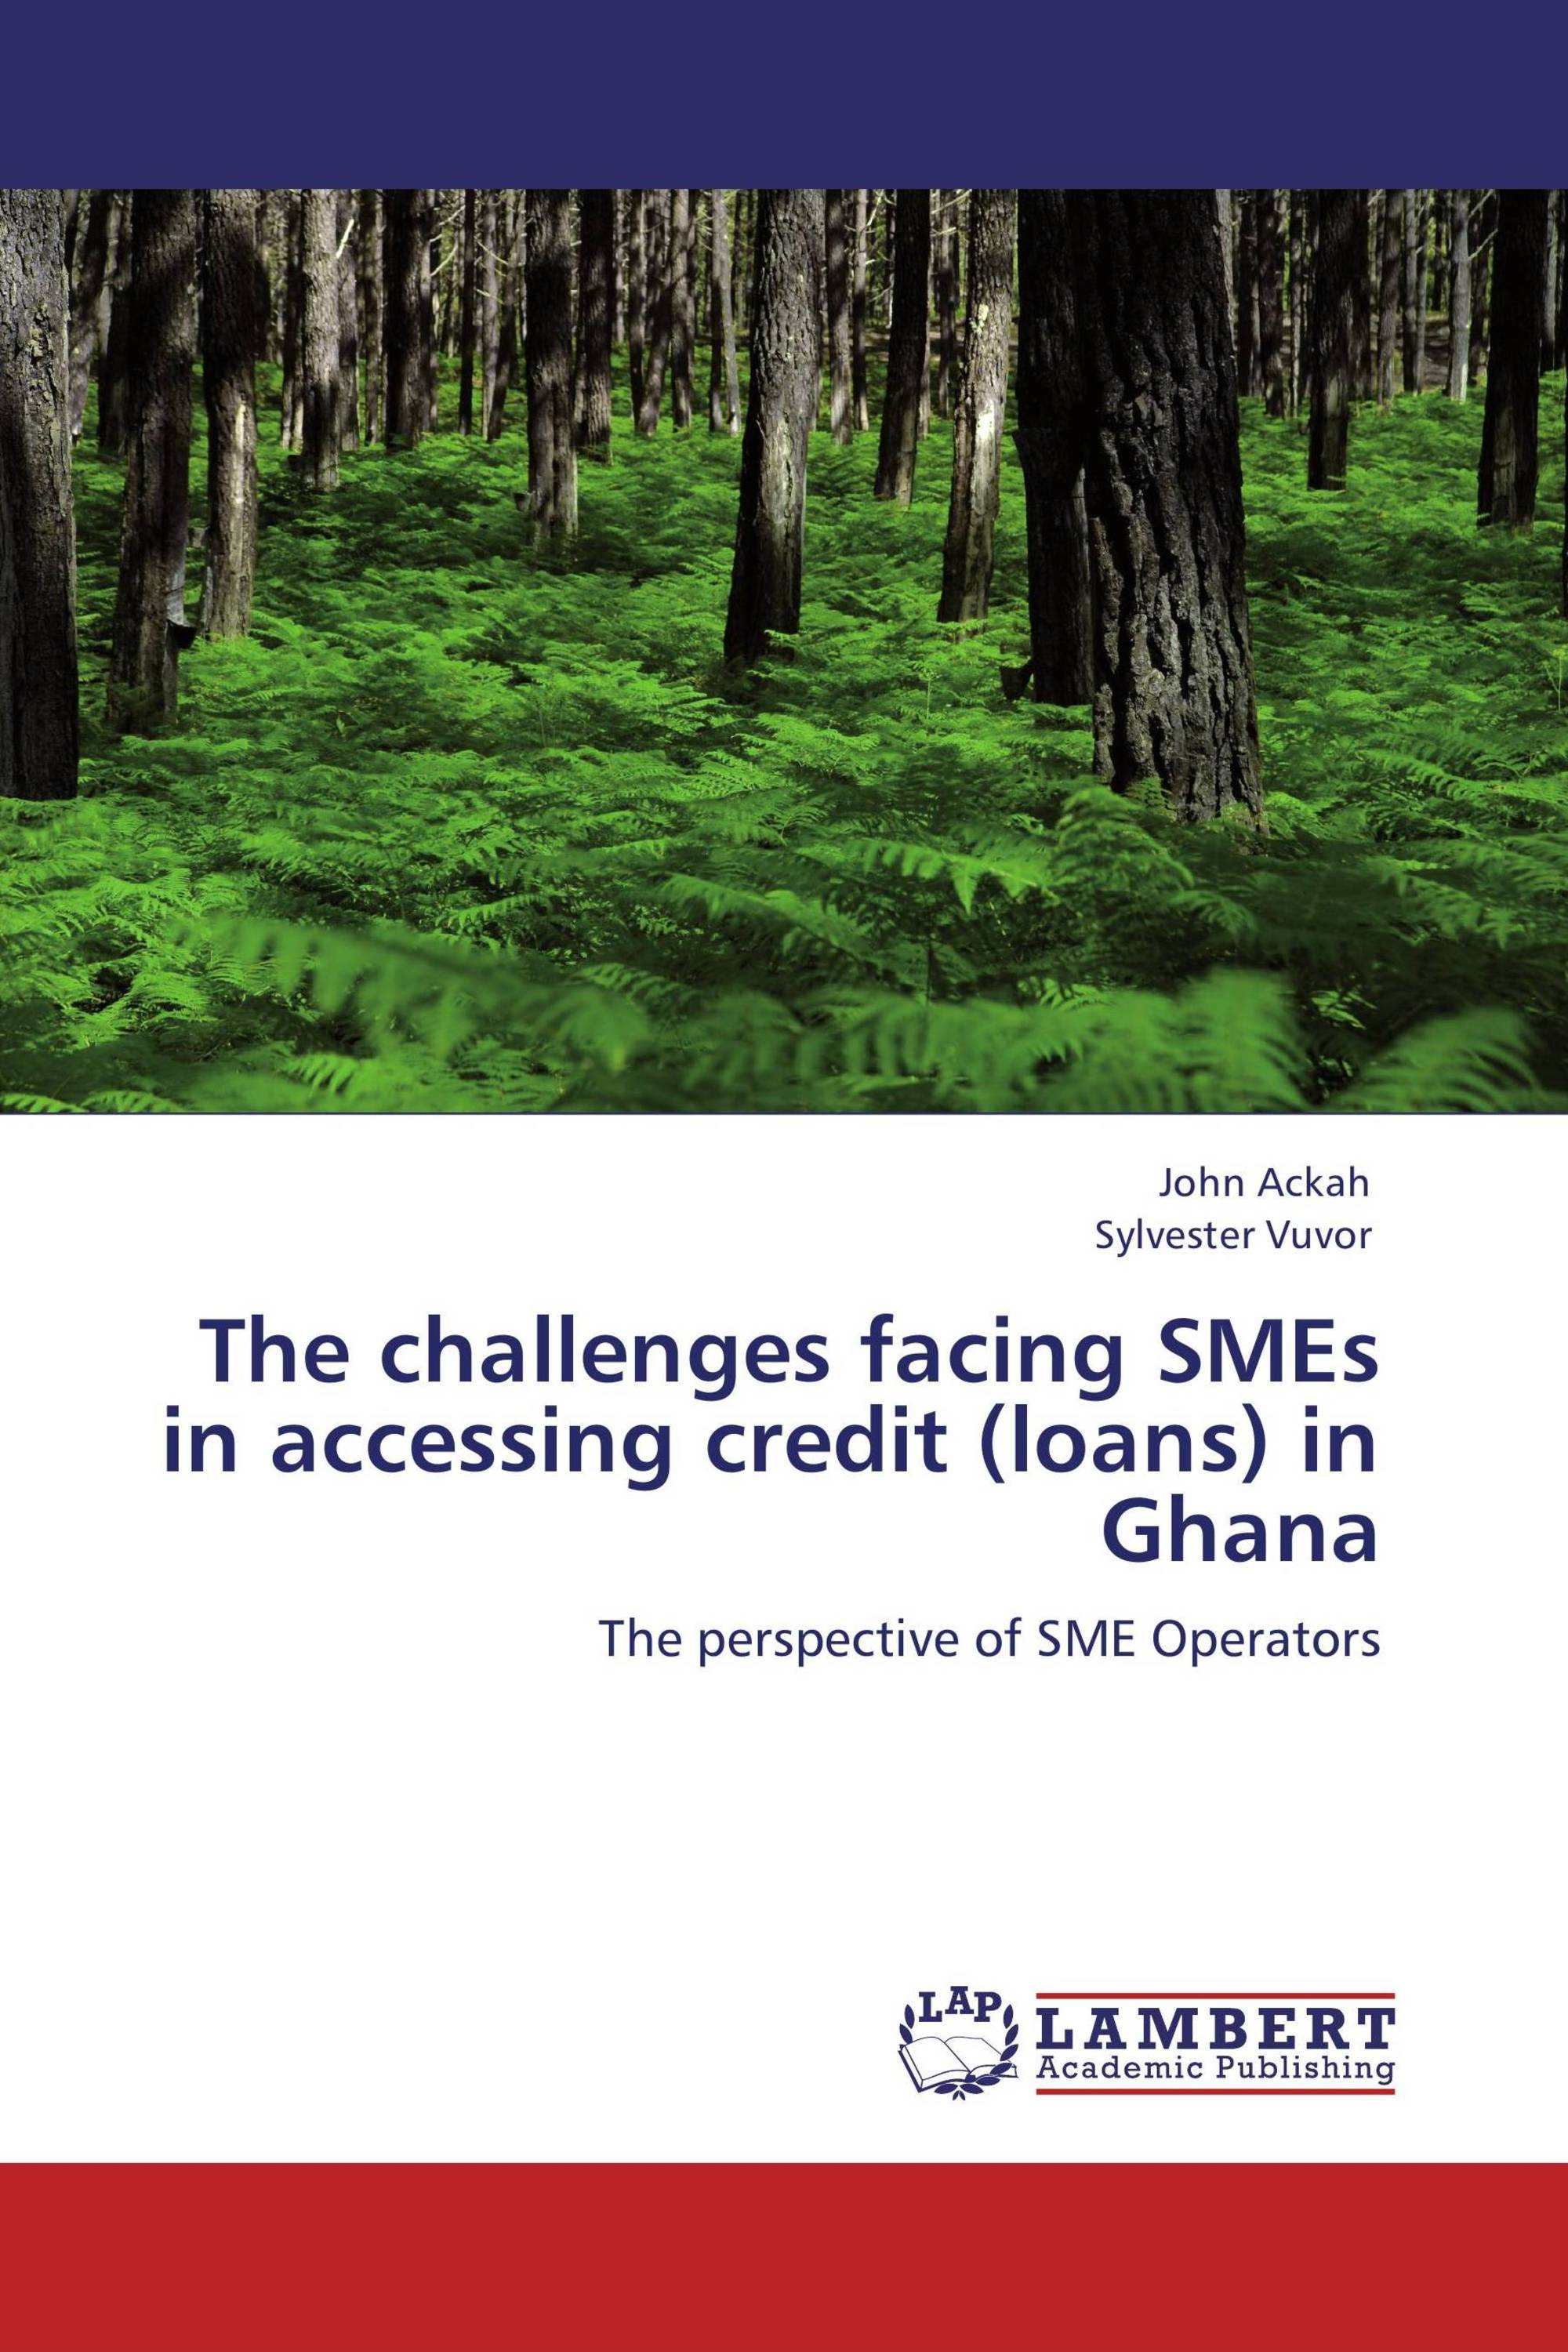 92% of companies in Ghana are SMES – BASTIAT Ghana report